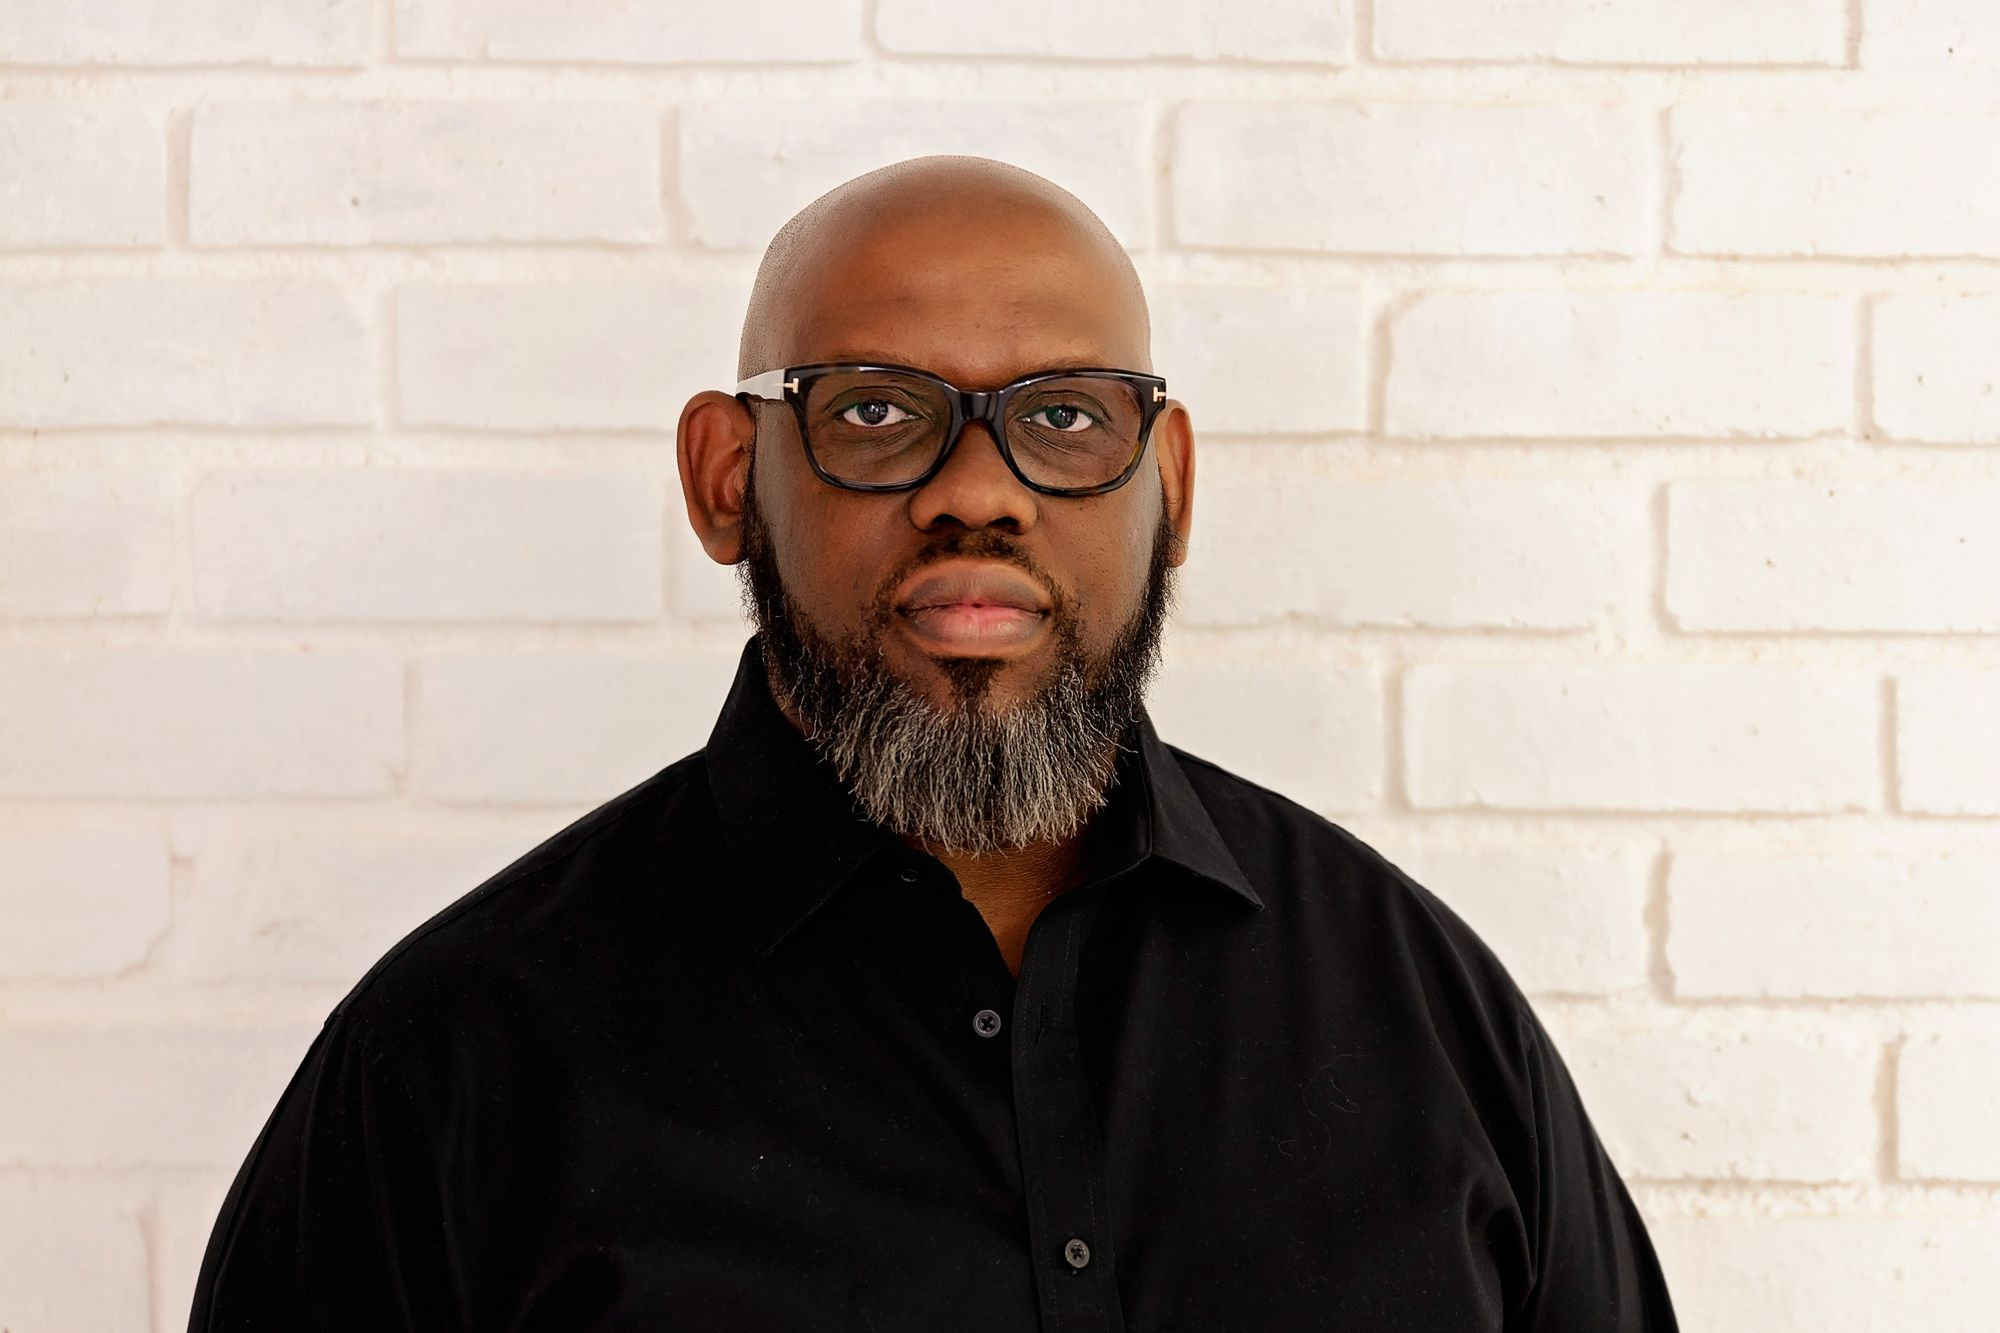 Sipho Dlamini, CEO, Universal Music Group, South Africa and Sub-Saharan Africa